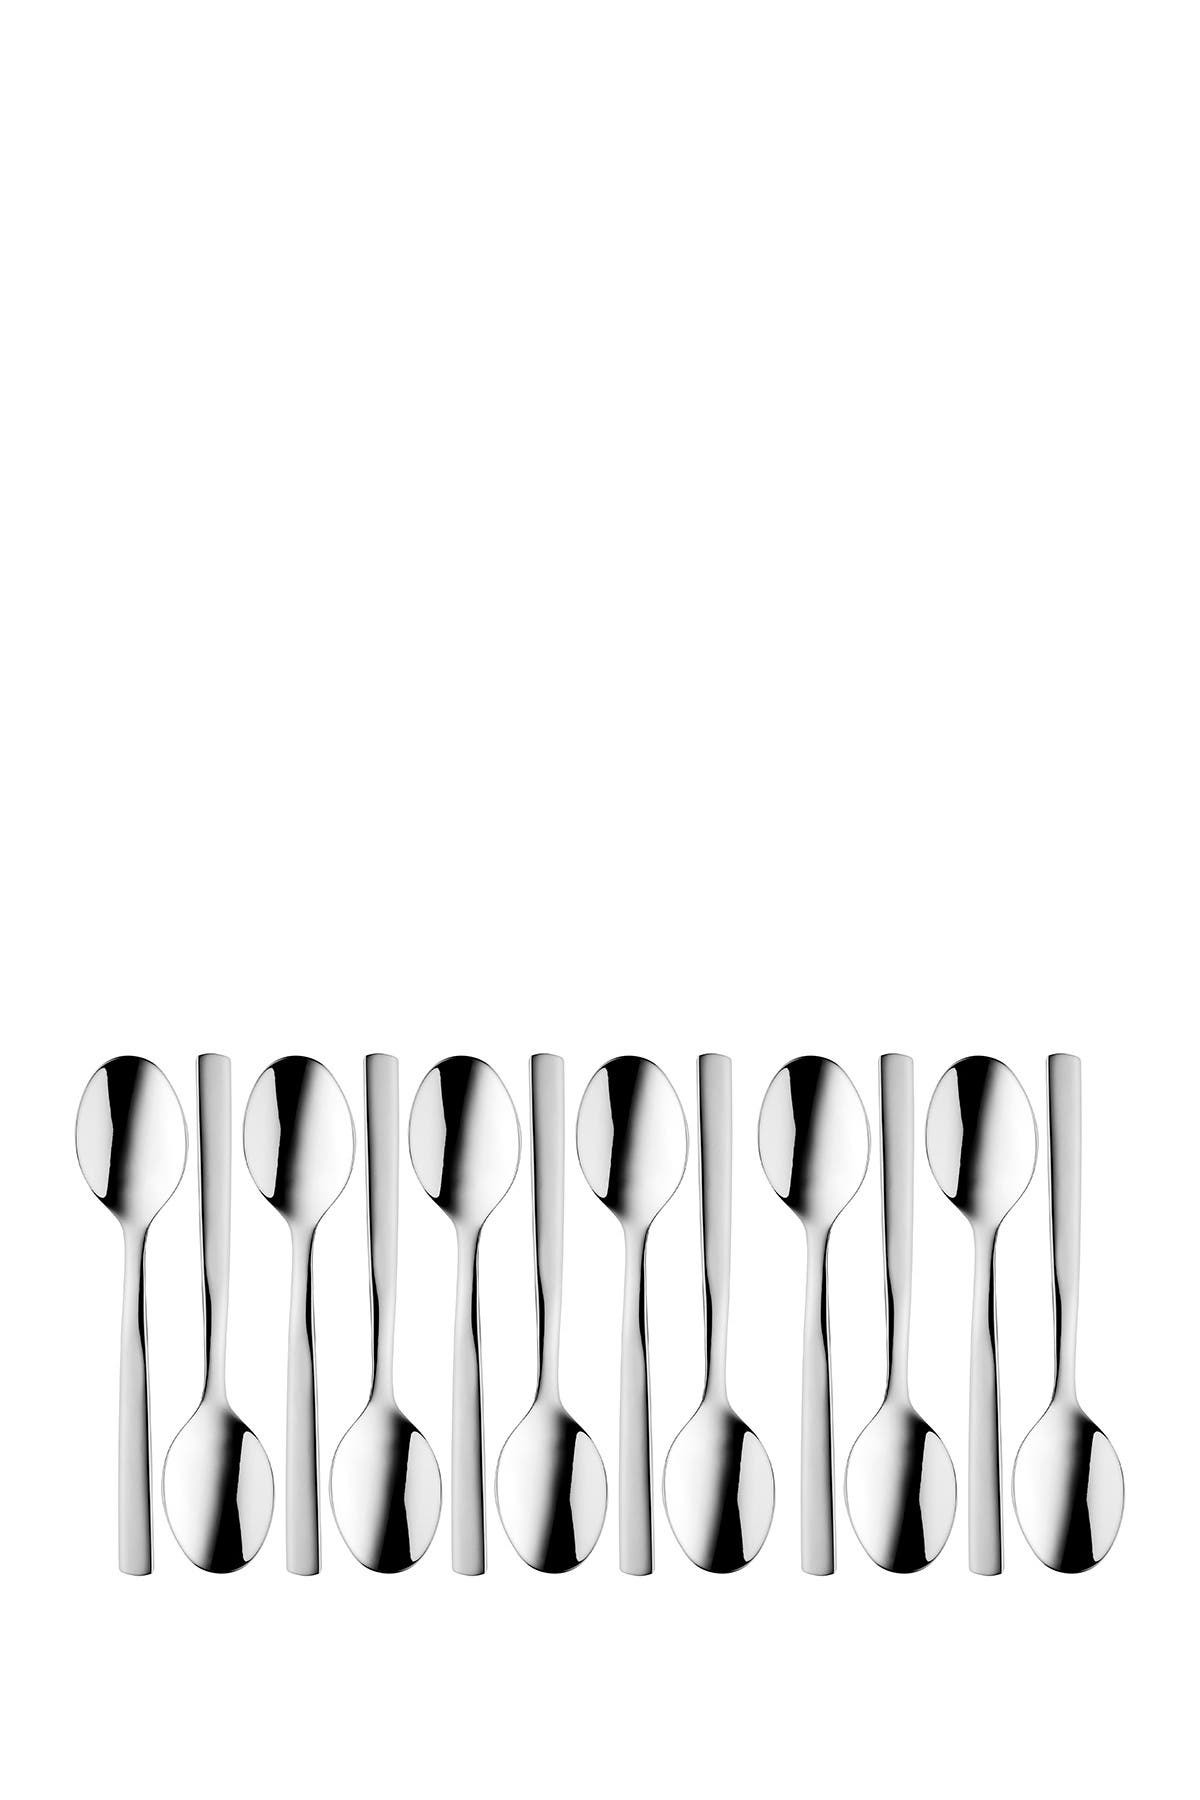 Image of BergHOFF Essentials Soup Spoon - Set of 12